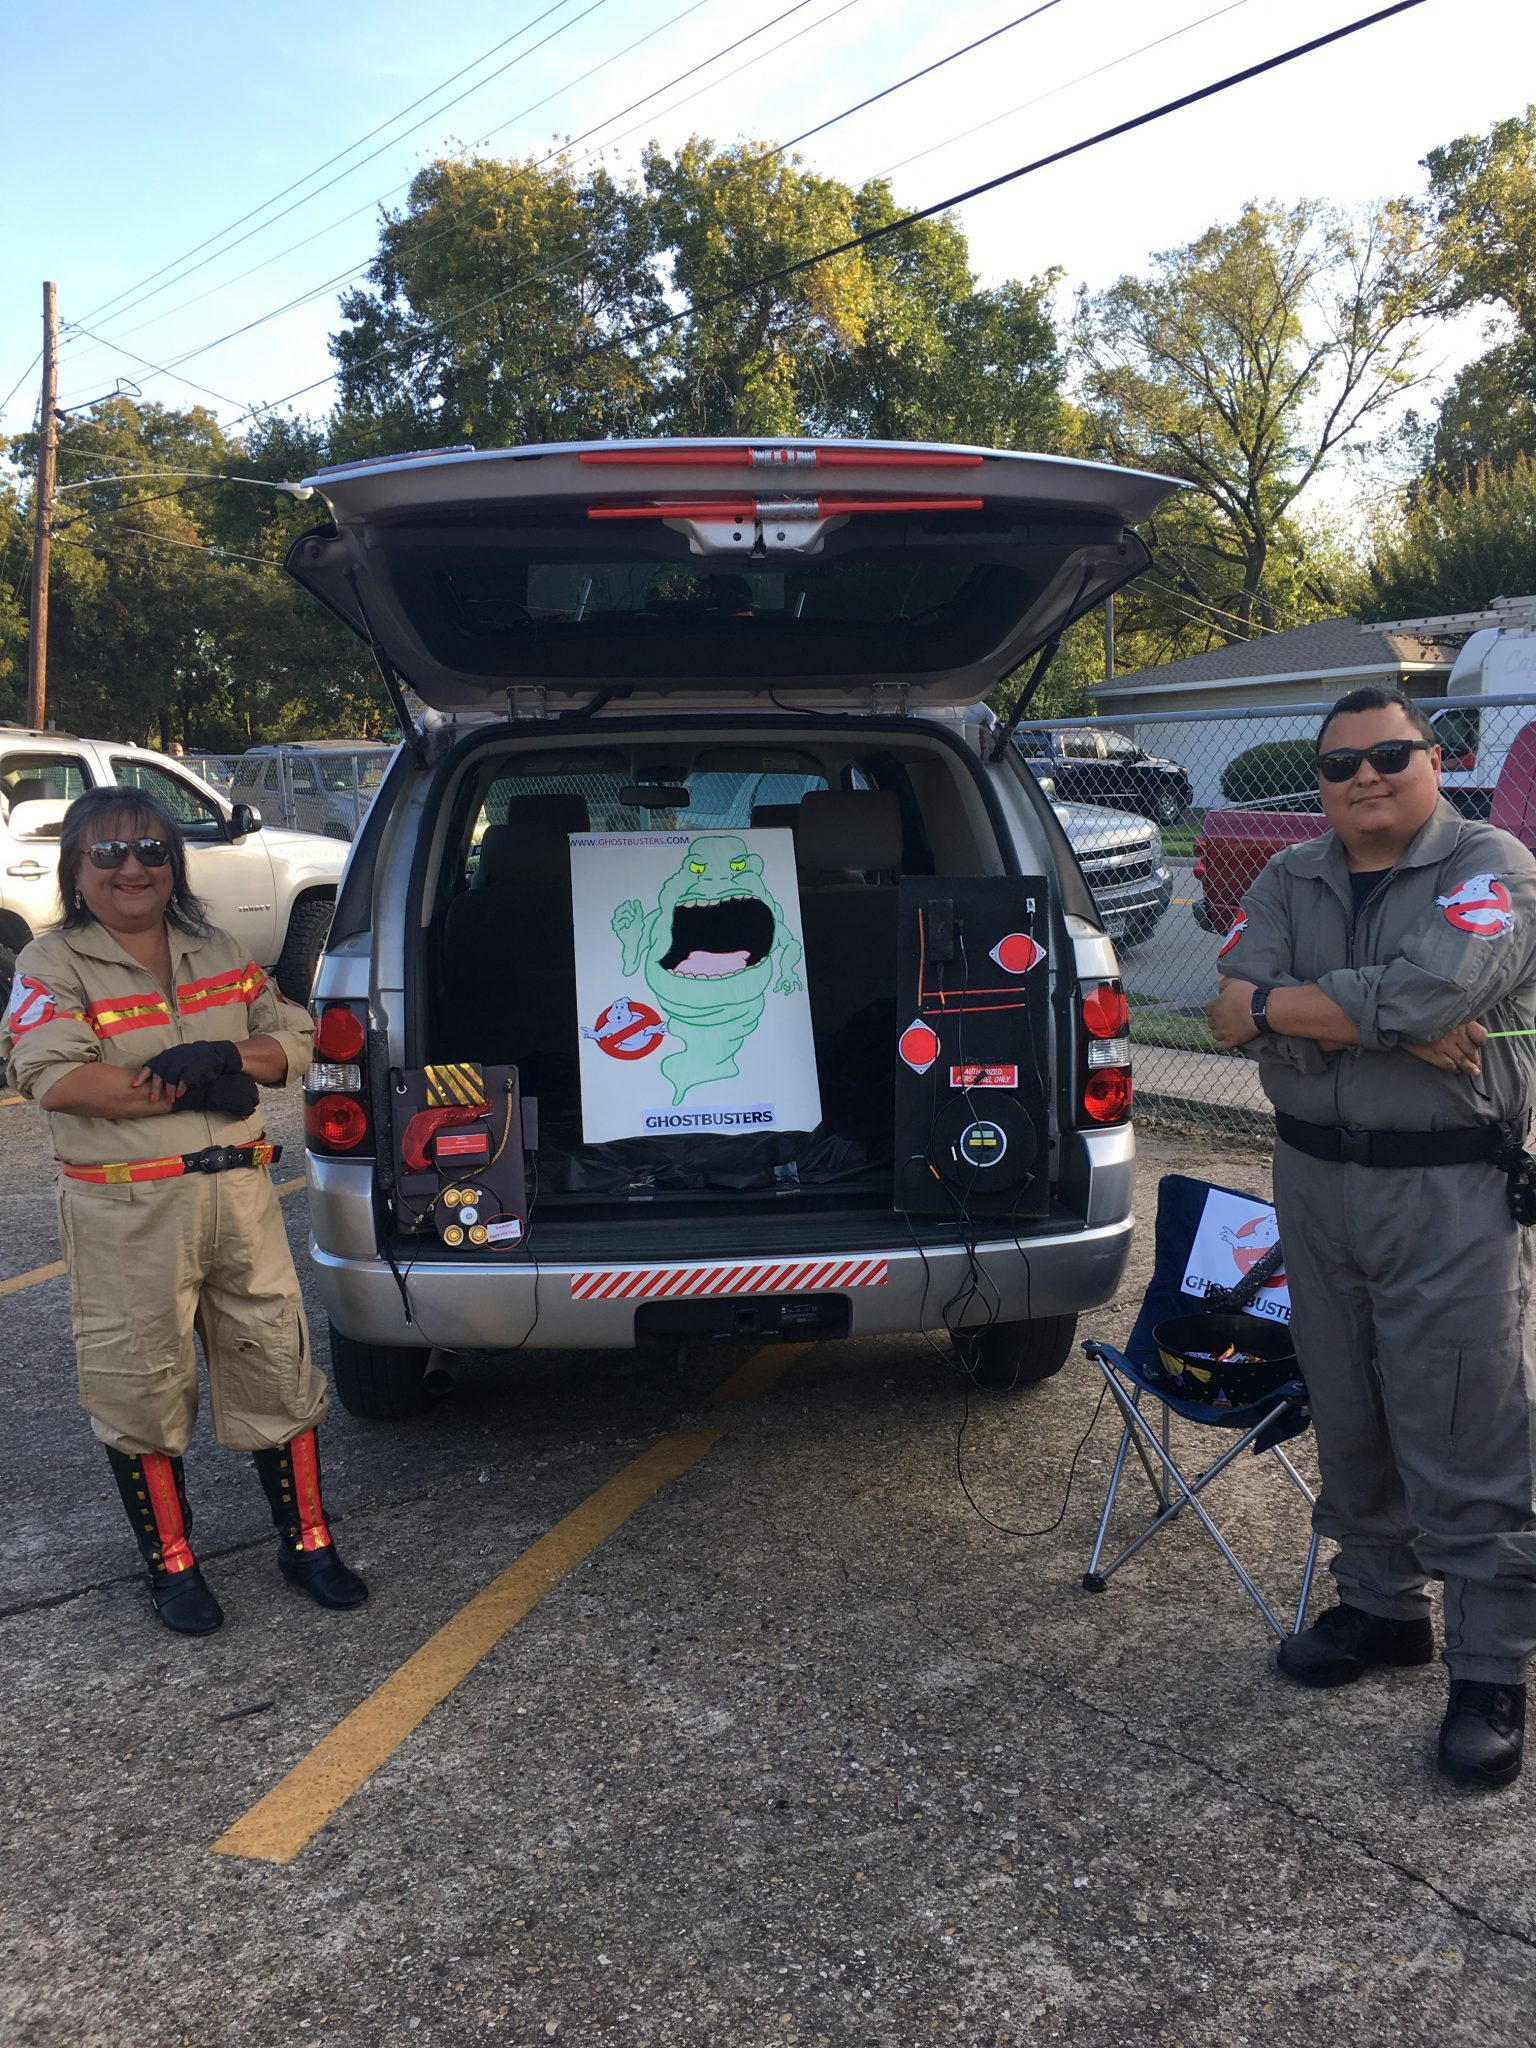 The Alex Sanger Elementary trunk-or-treat. Image courtesy of Principal Hector Martinez.